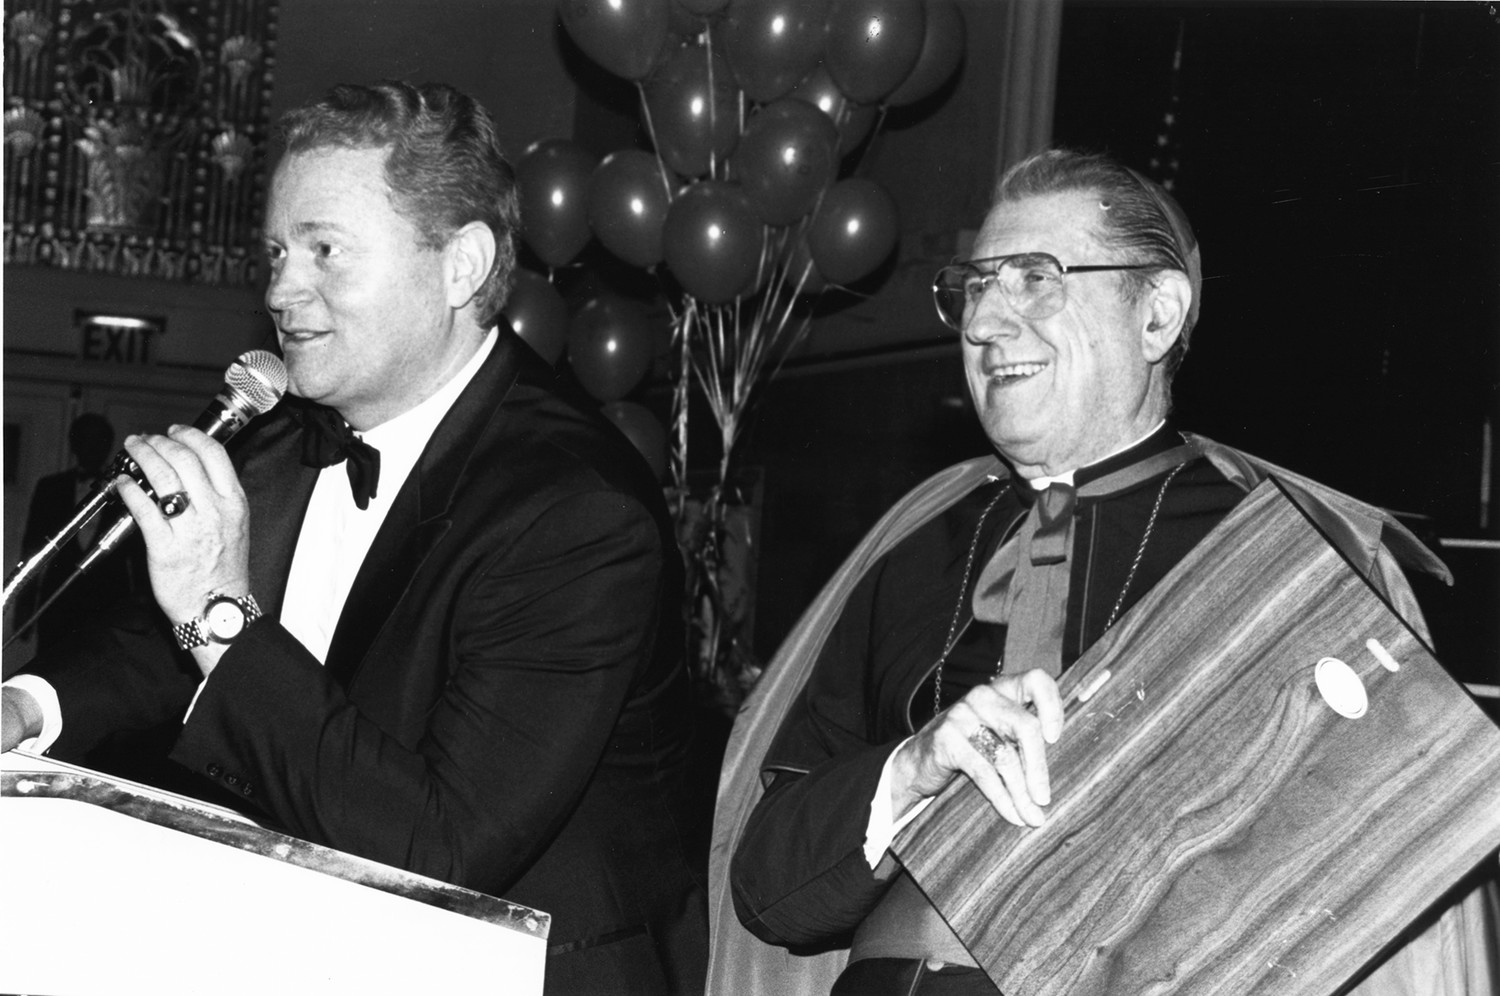 Rusty Staub joins Cardinal John O'Connor at the 1989 CYO Club of Champions Tribute Dinner honoring his former New York Mets teammate Gary Carter. At the time, Staub was a television announcer for the Mets.